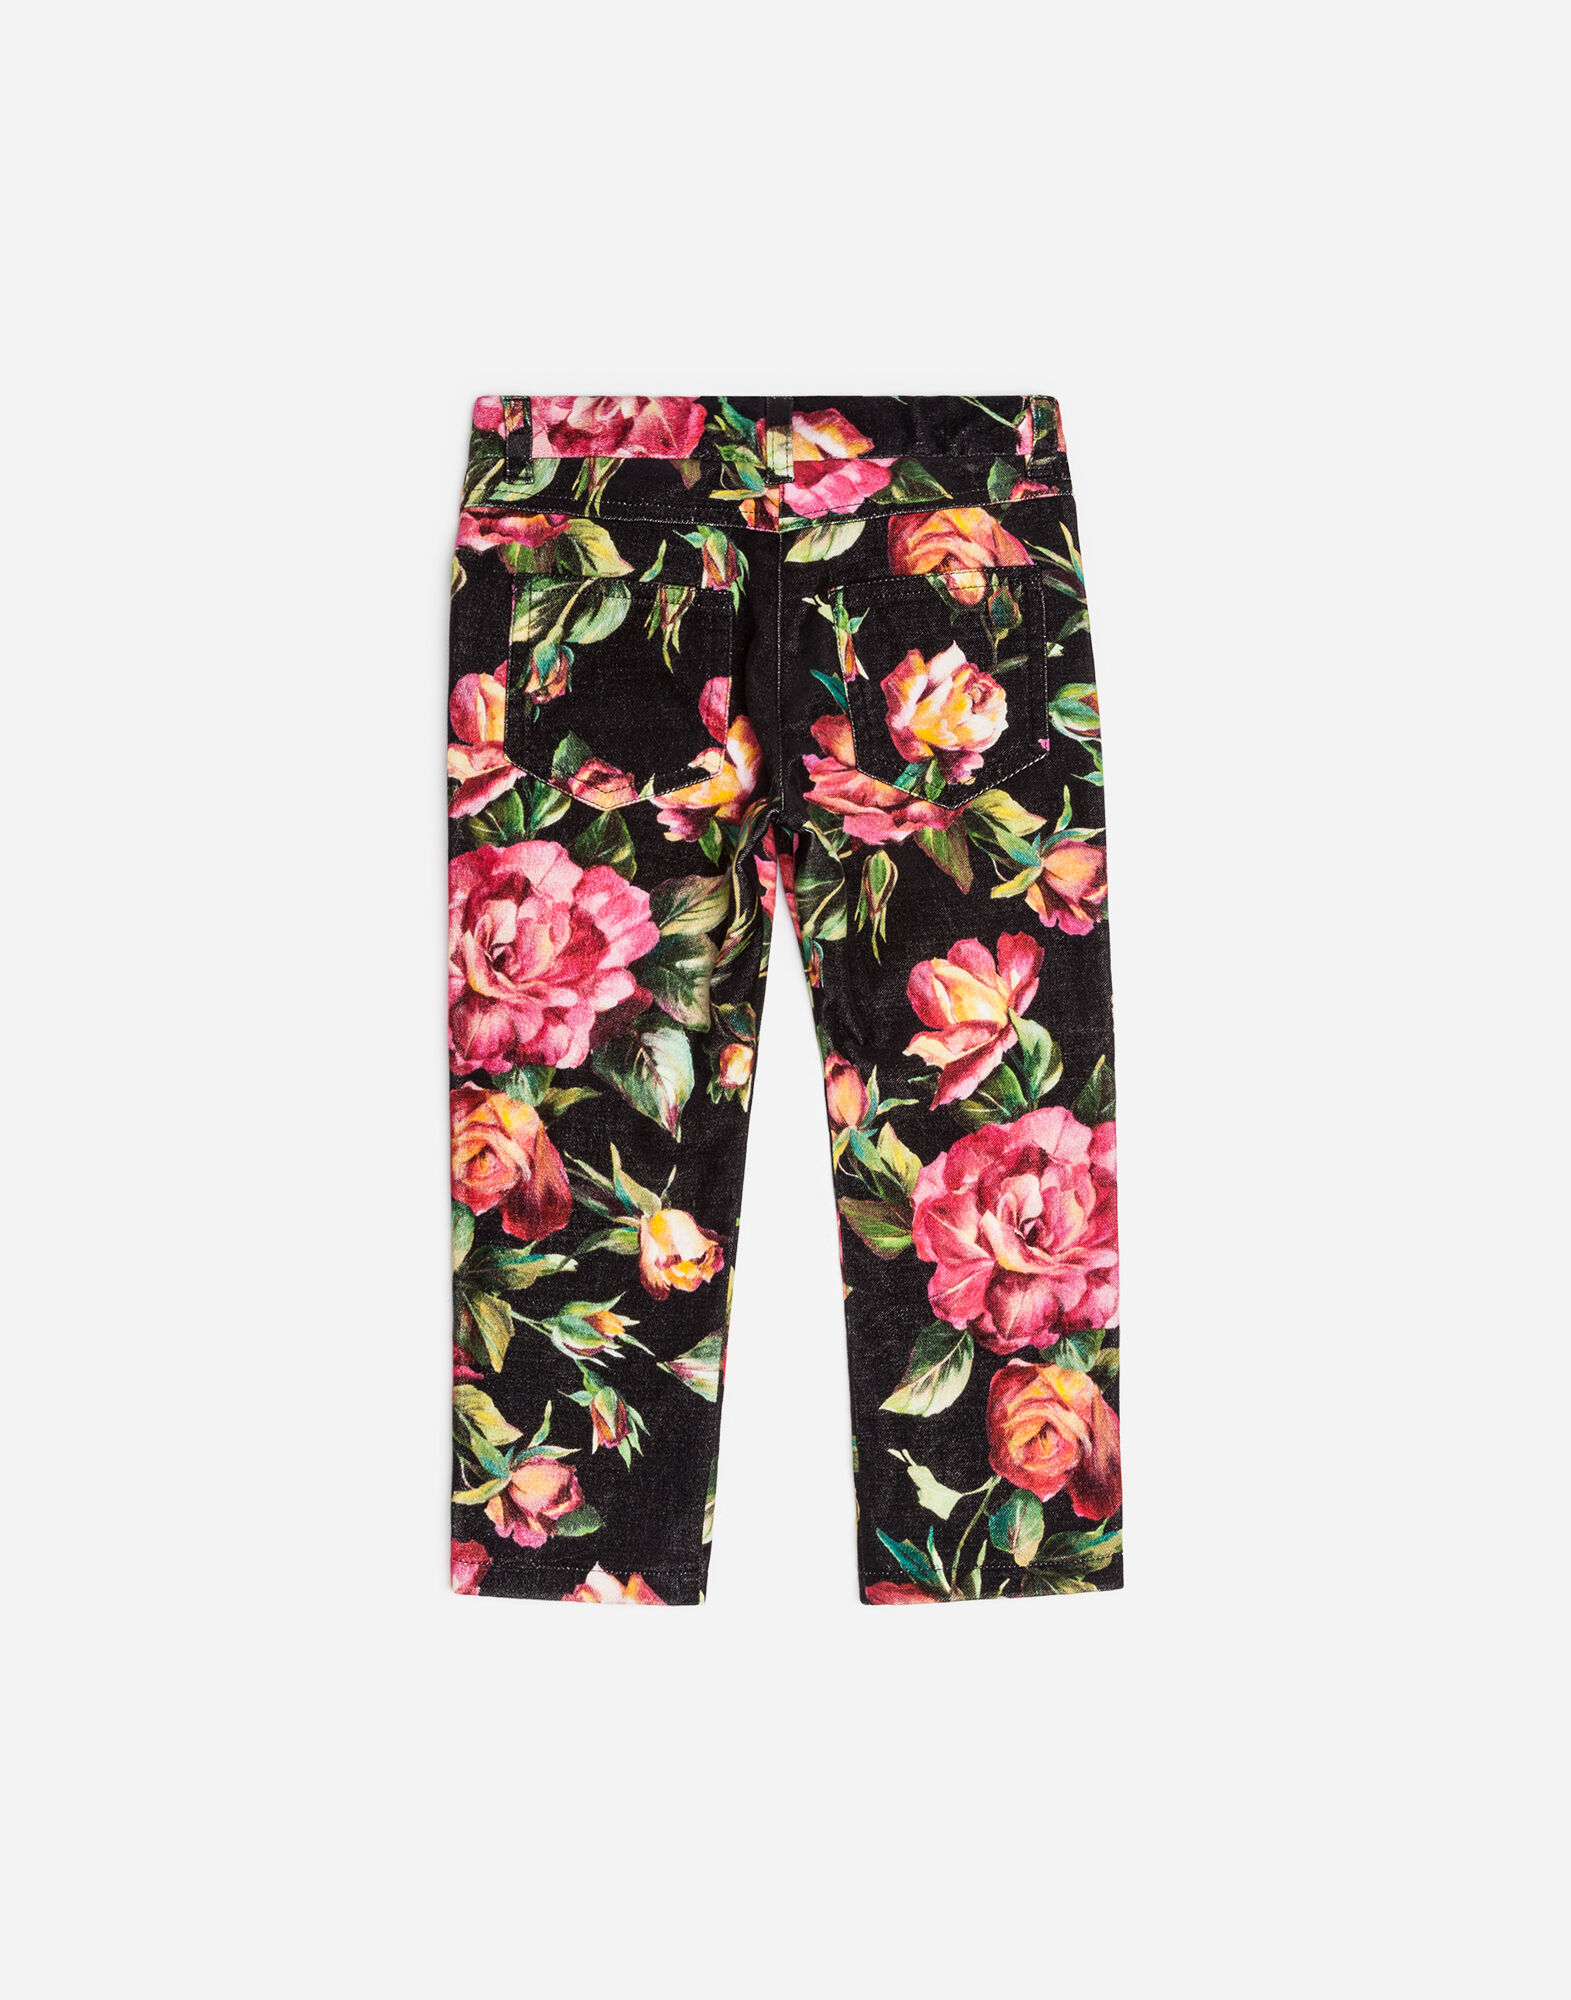 PRINTED STRETCH VELVET PANTS